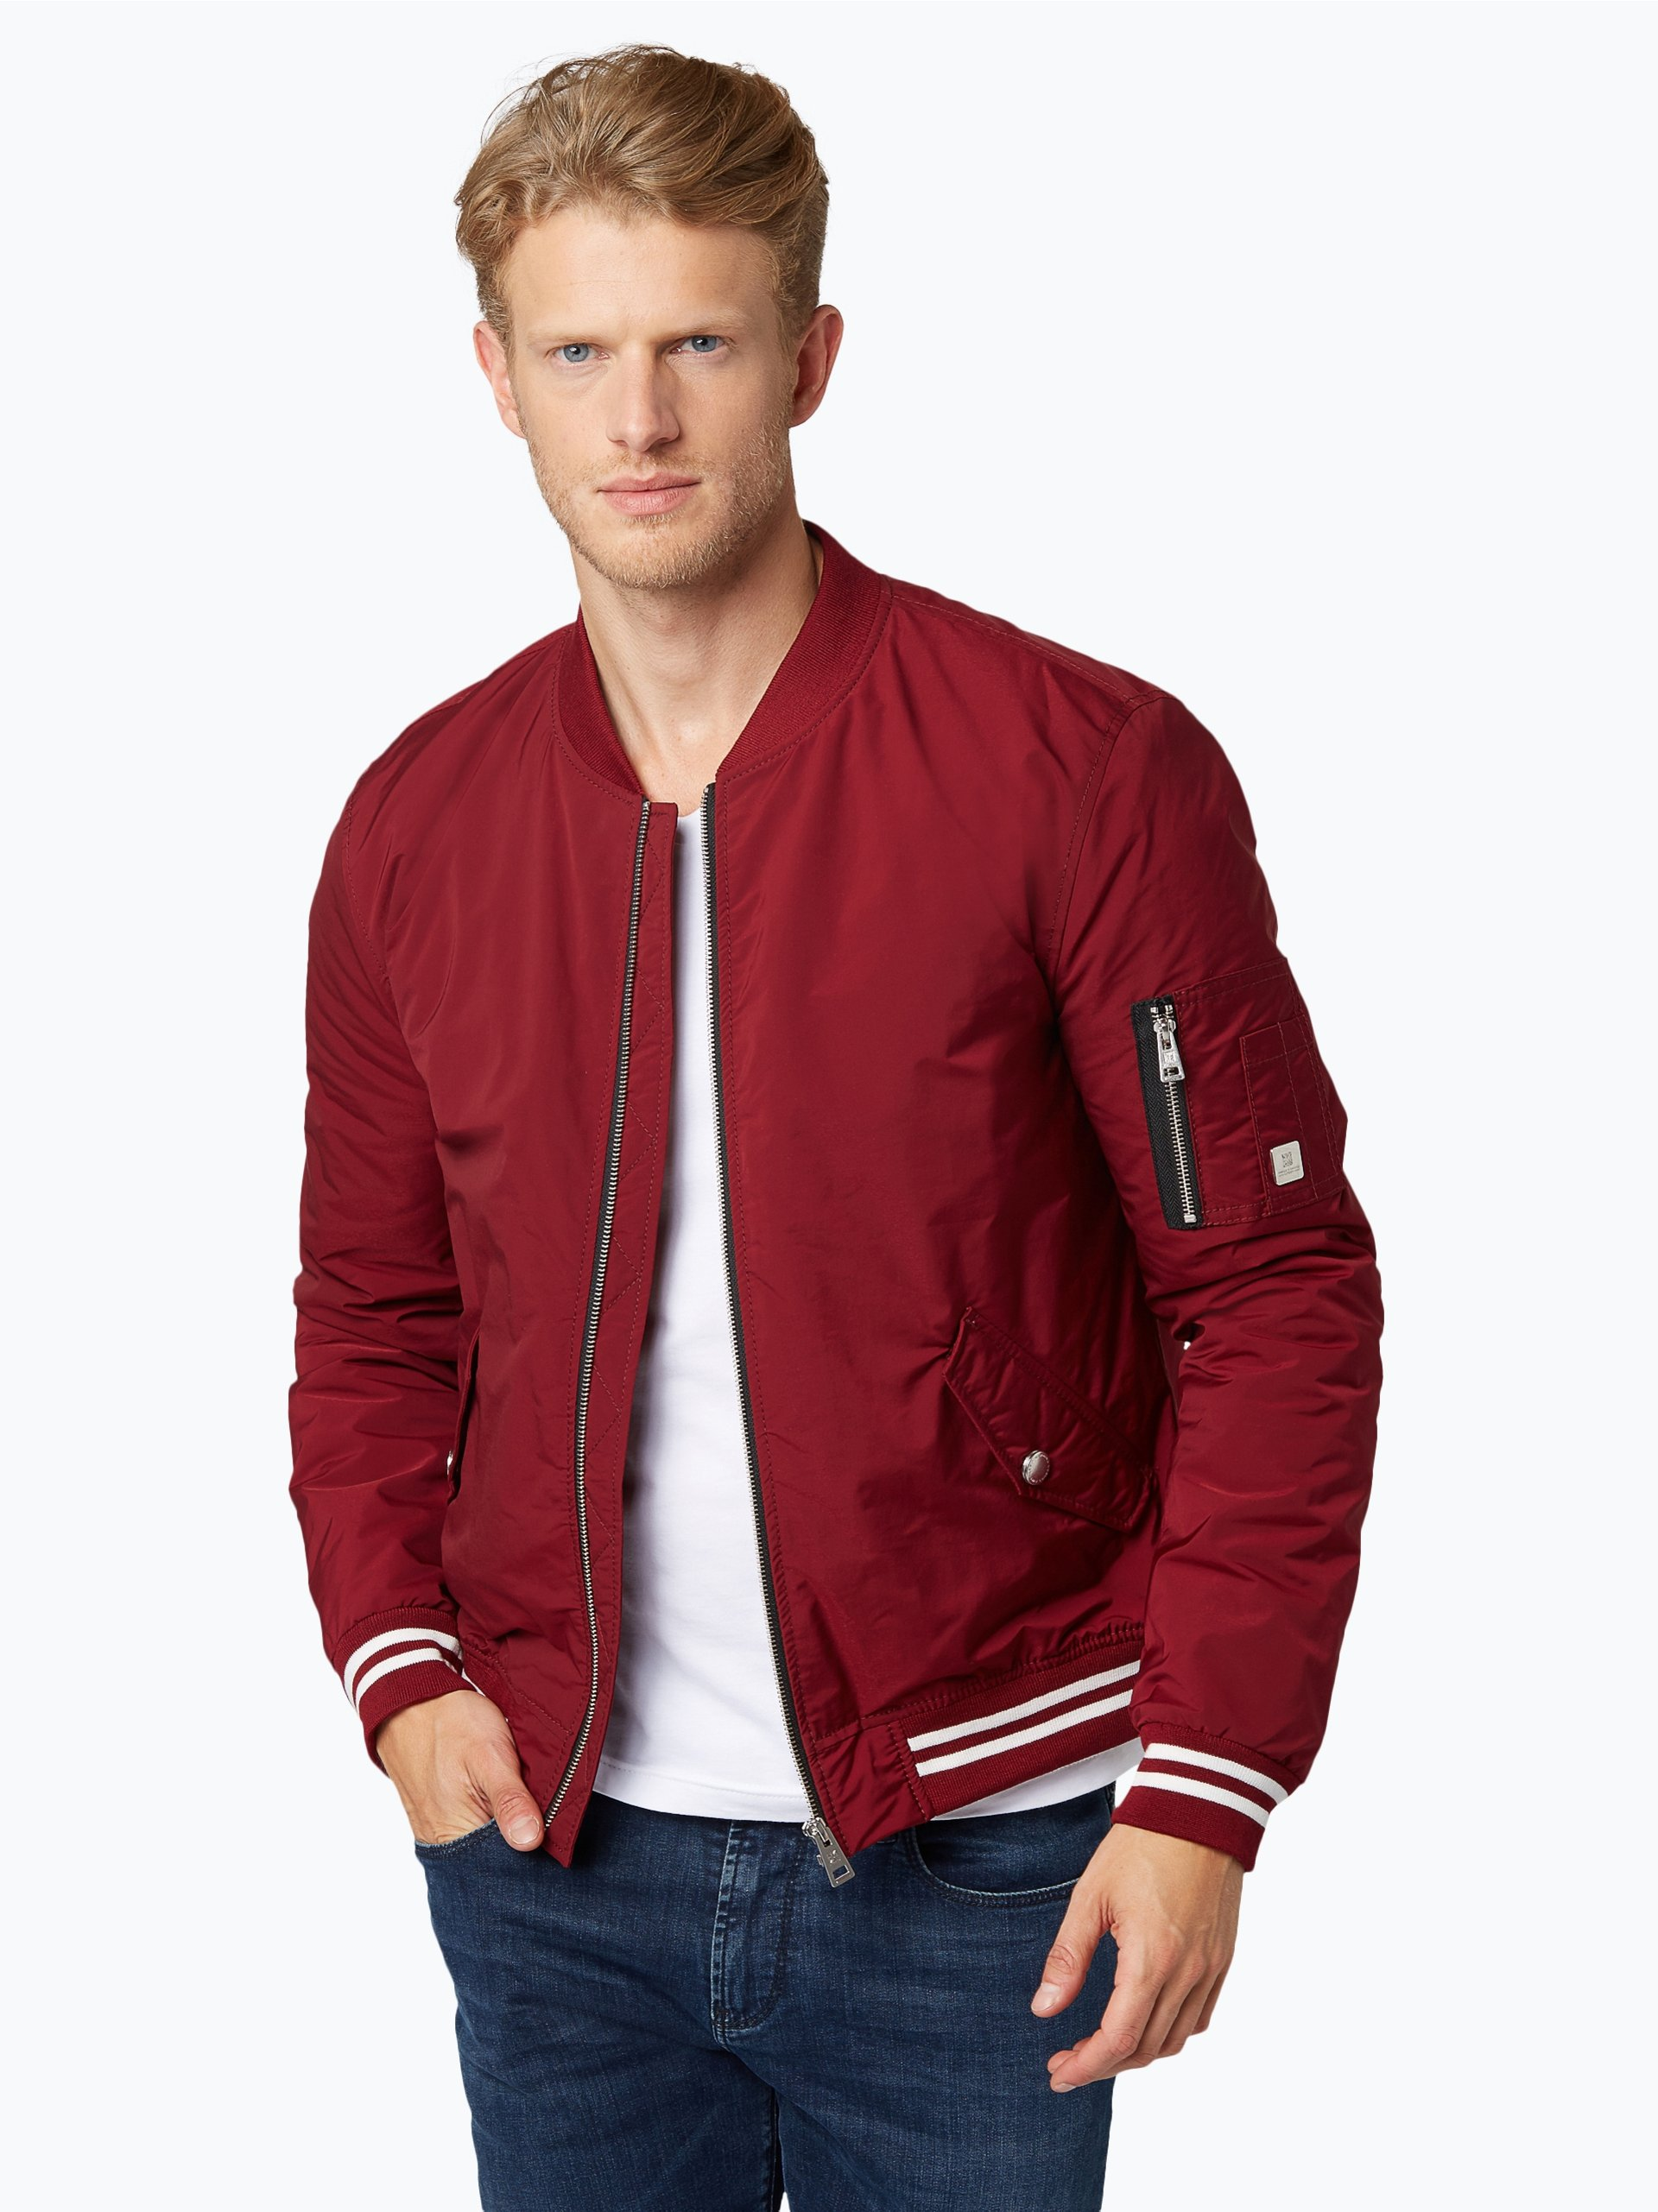 Finshley & Harding London Herren Jacke